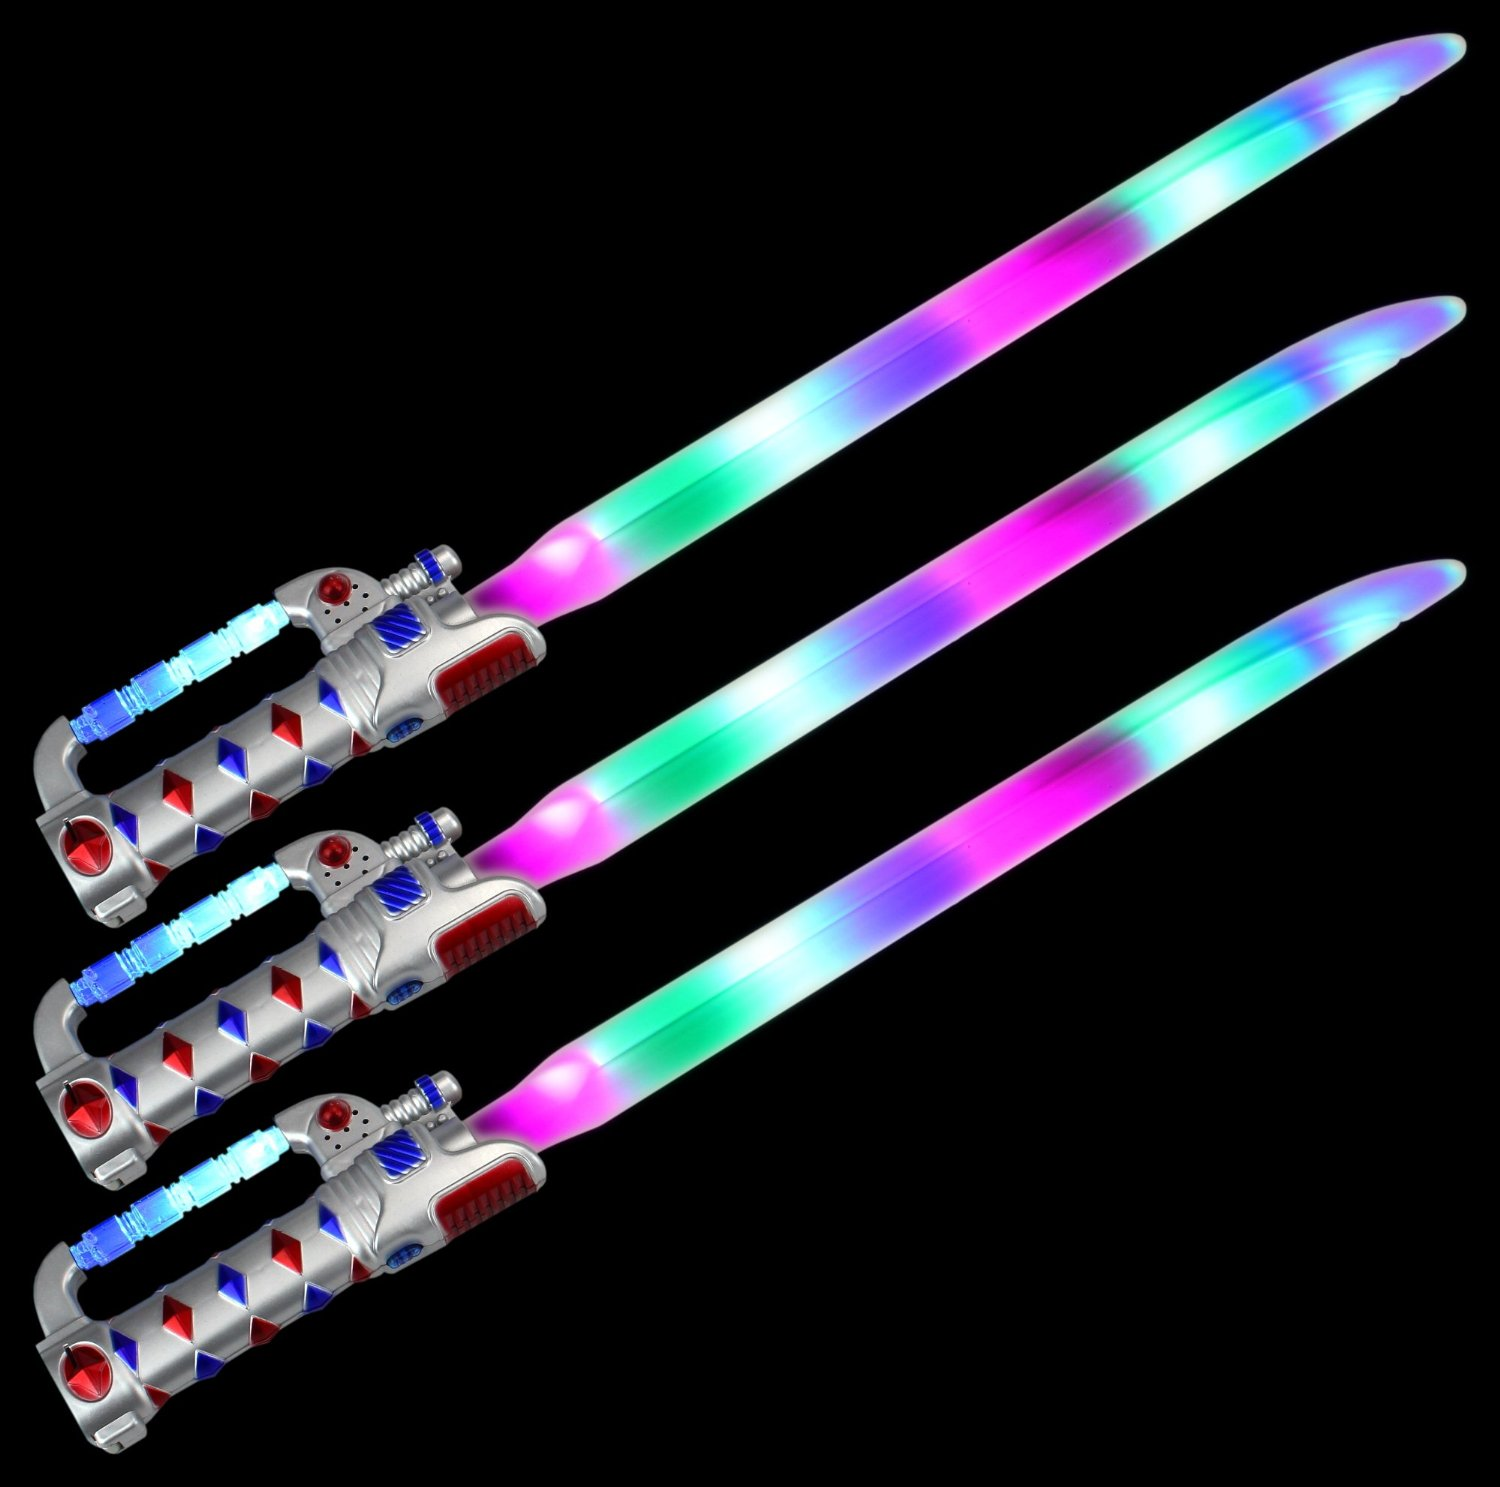 Set of 3 VT Space Knight Flashing LED & Clanging Sounds Party Favor Toy Light Up Sword Sabers (Colors May Vary)